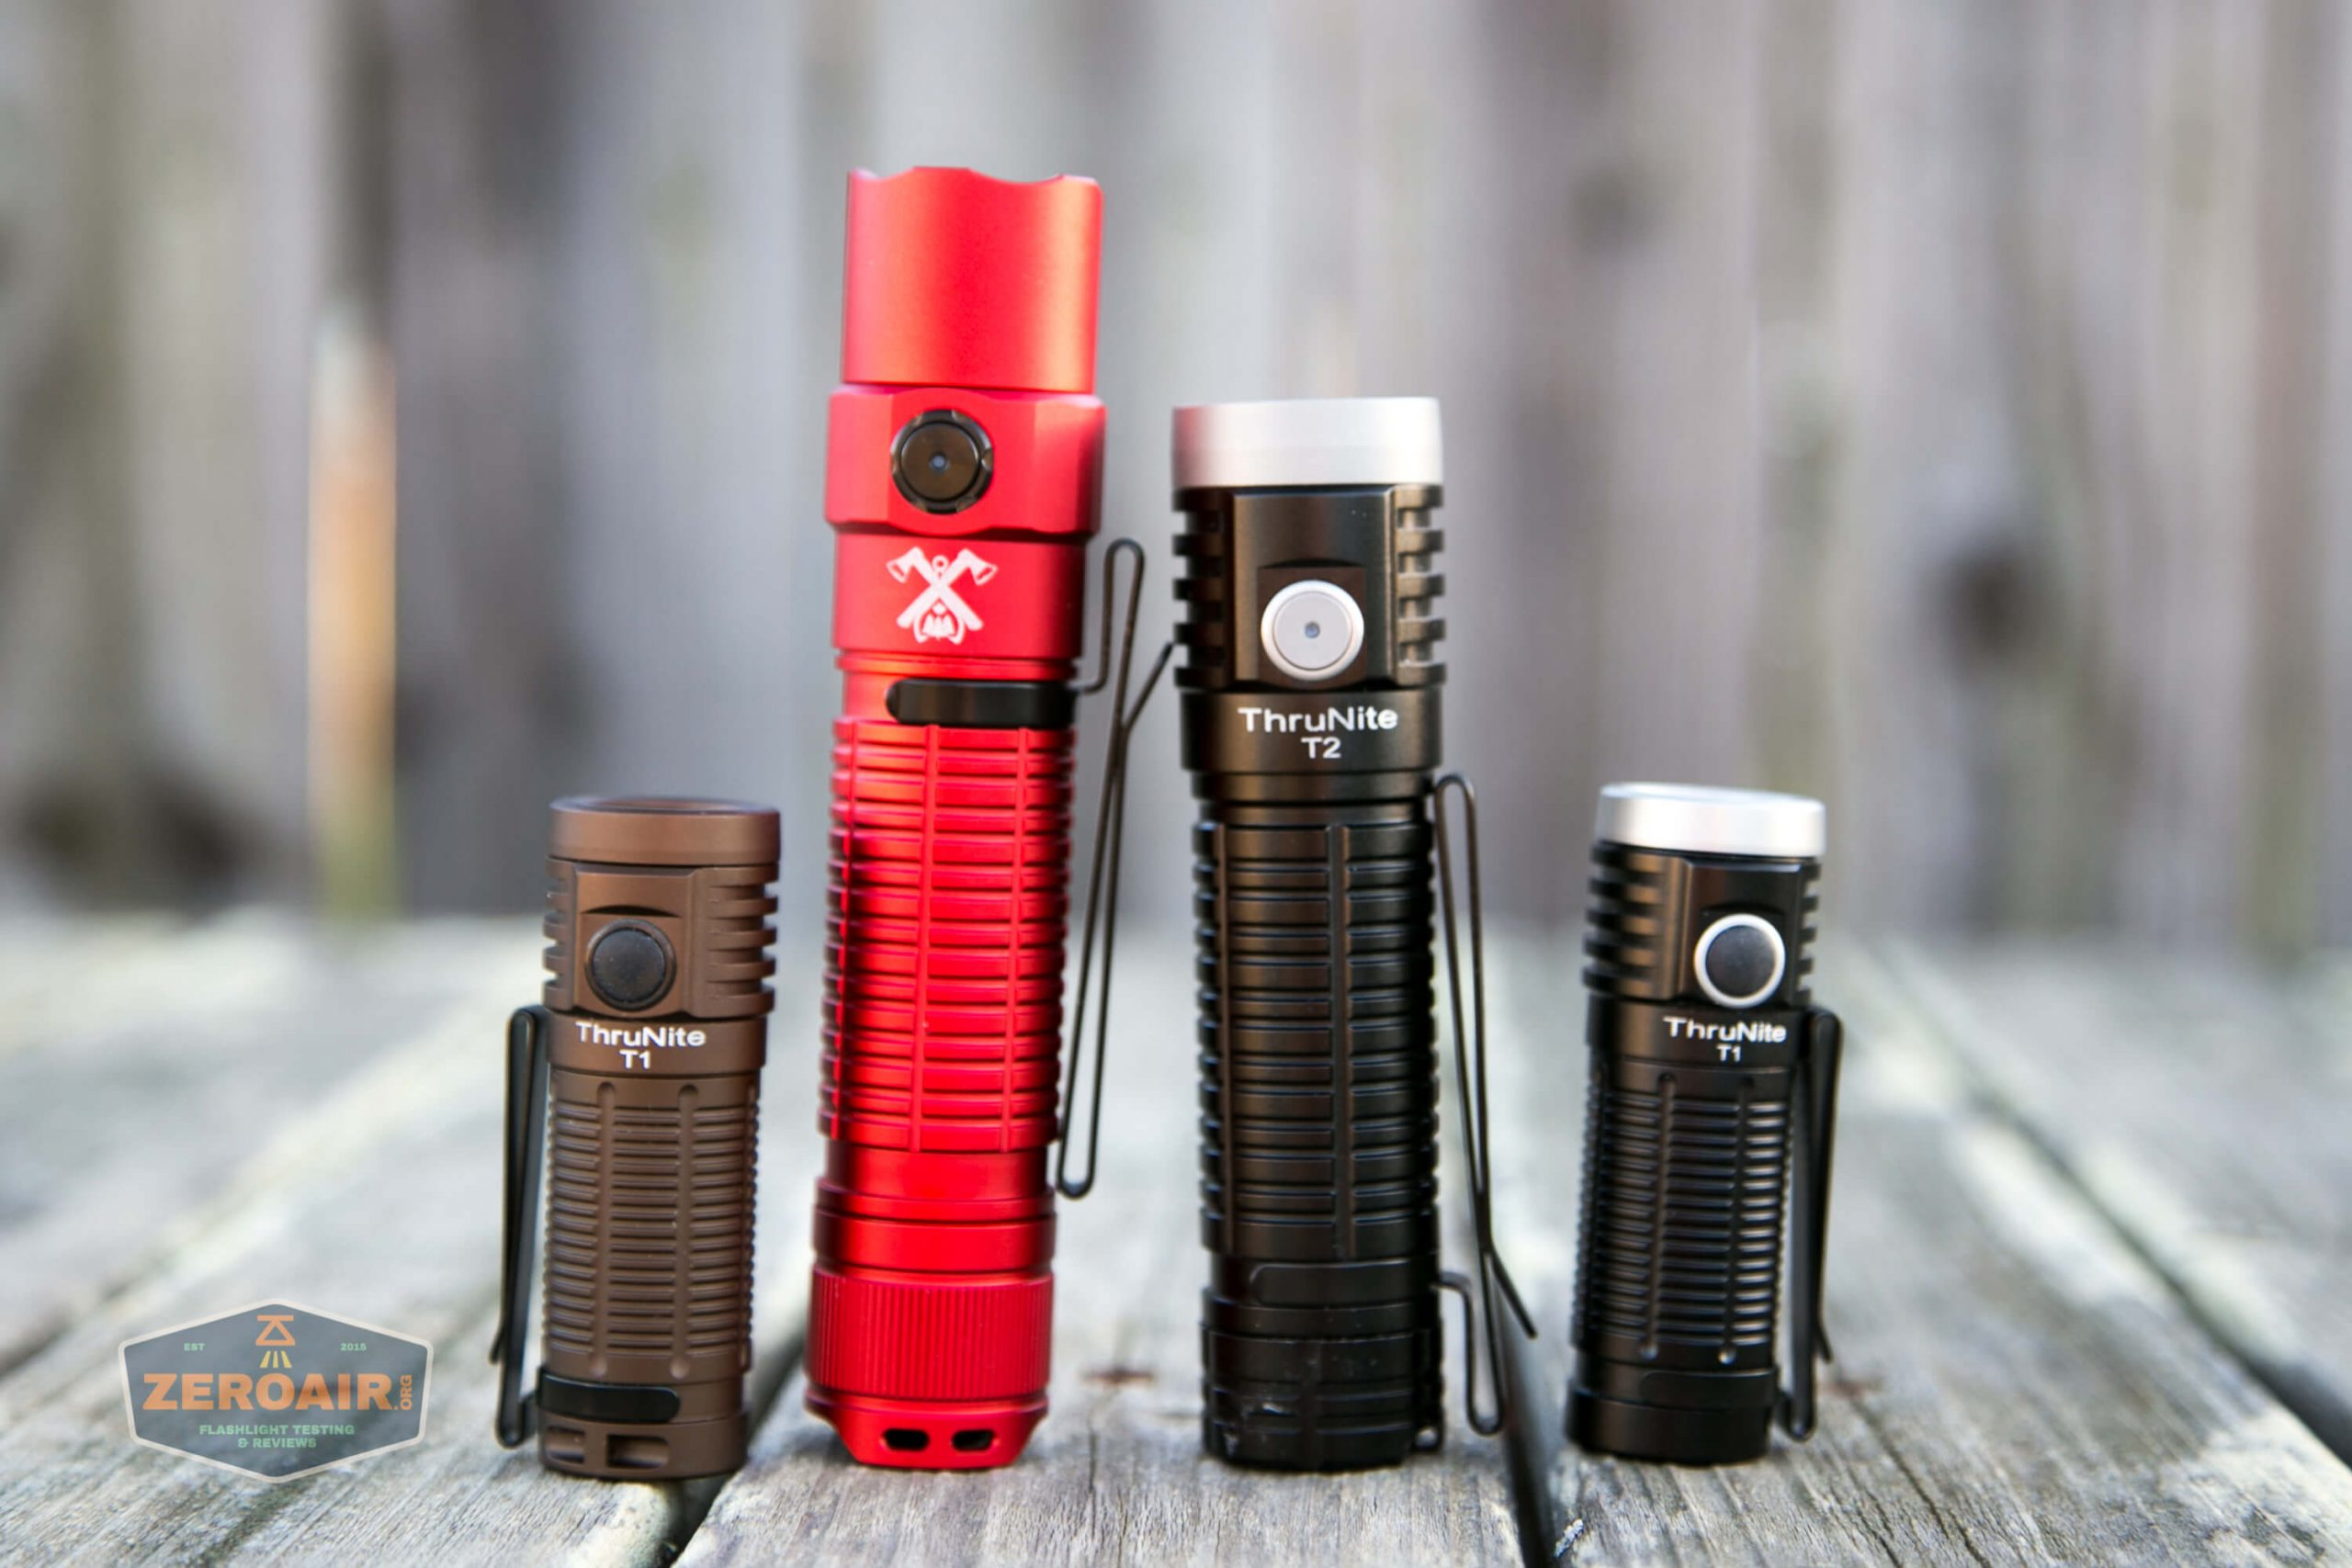 thrunite tt20 the outsider red 21700 flashlight with other thrunites (t2, t1)